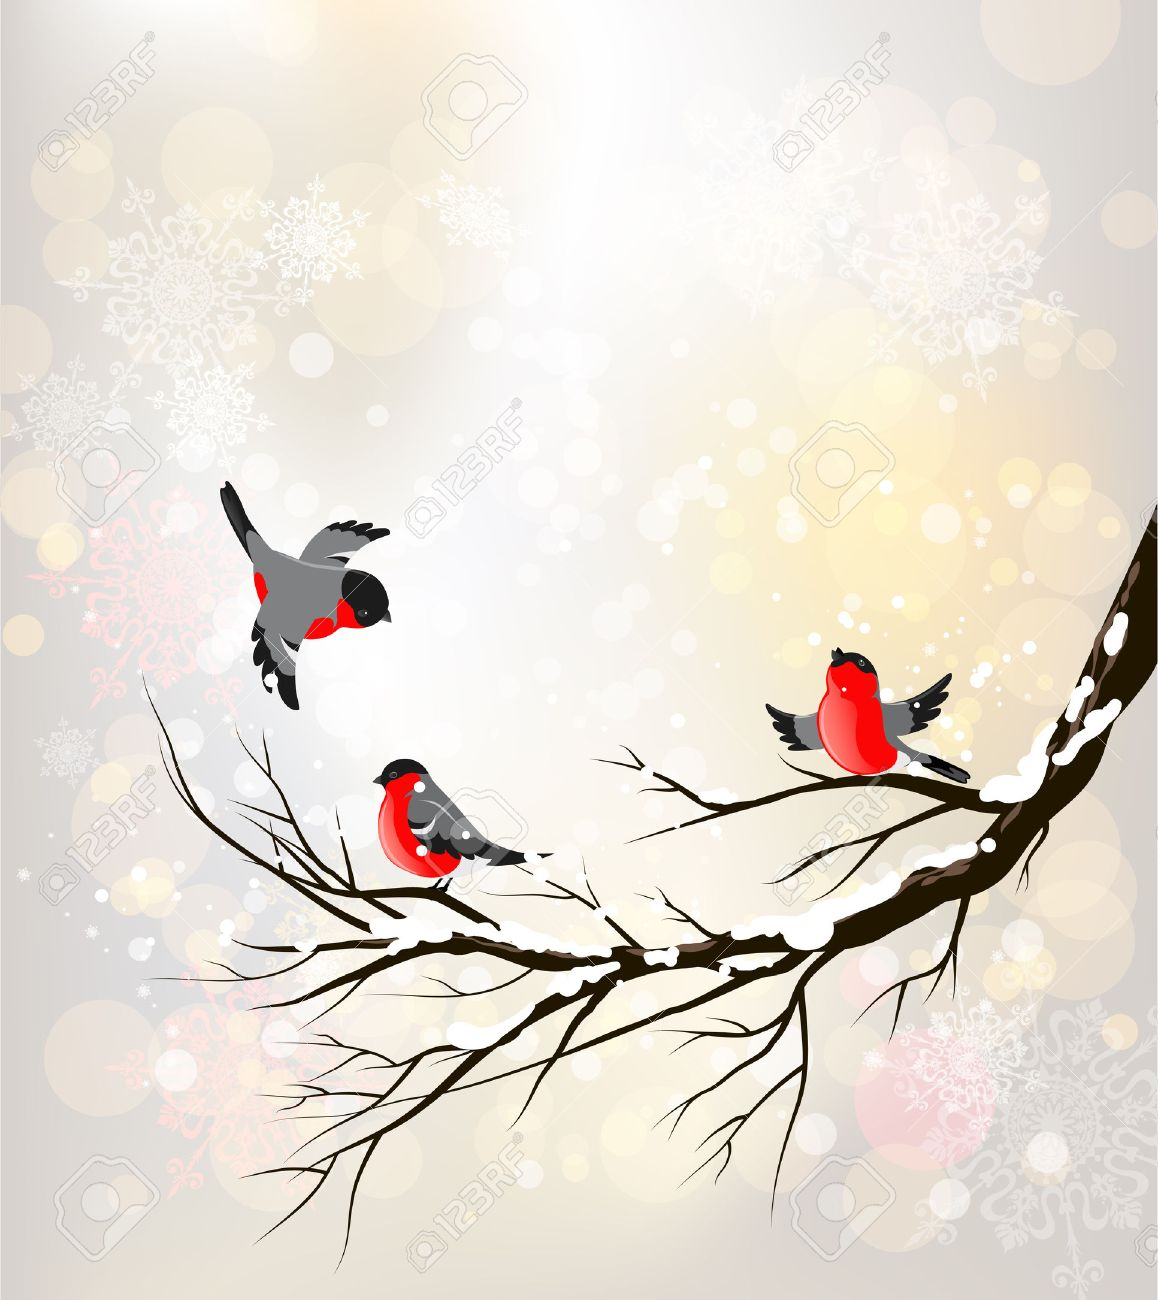 Winter background with birds. Place for text. - 32786085